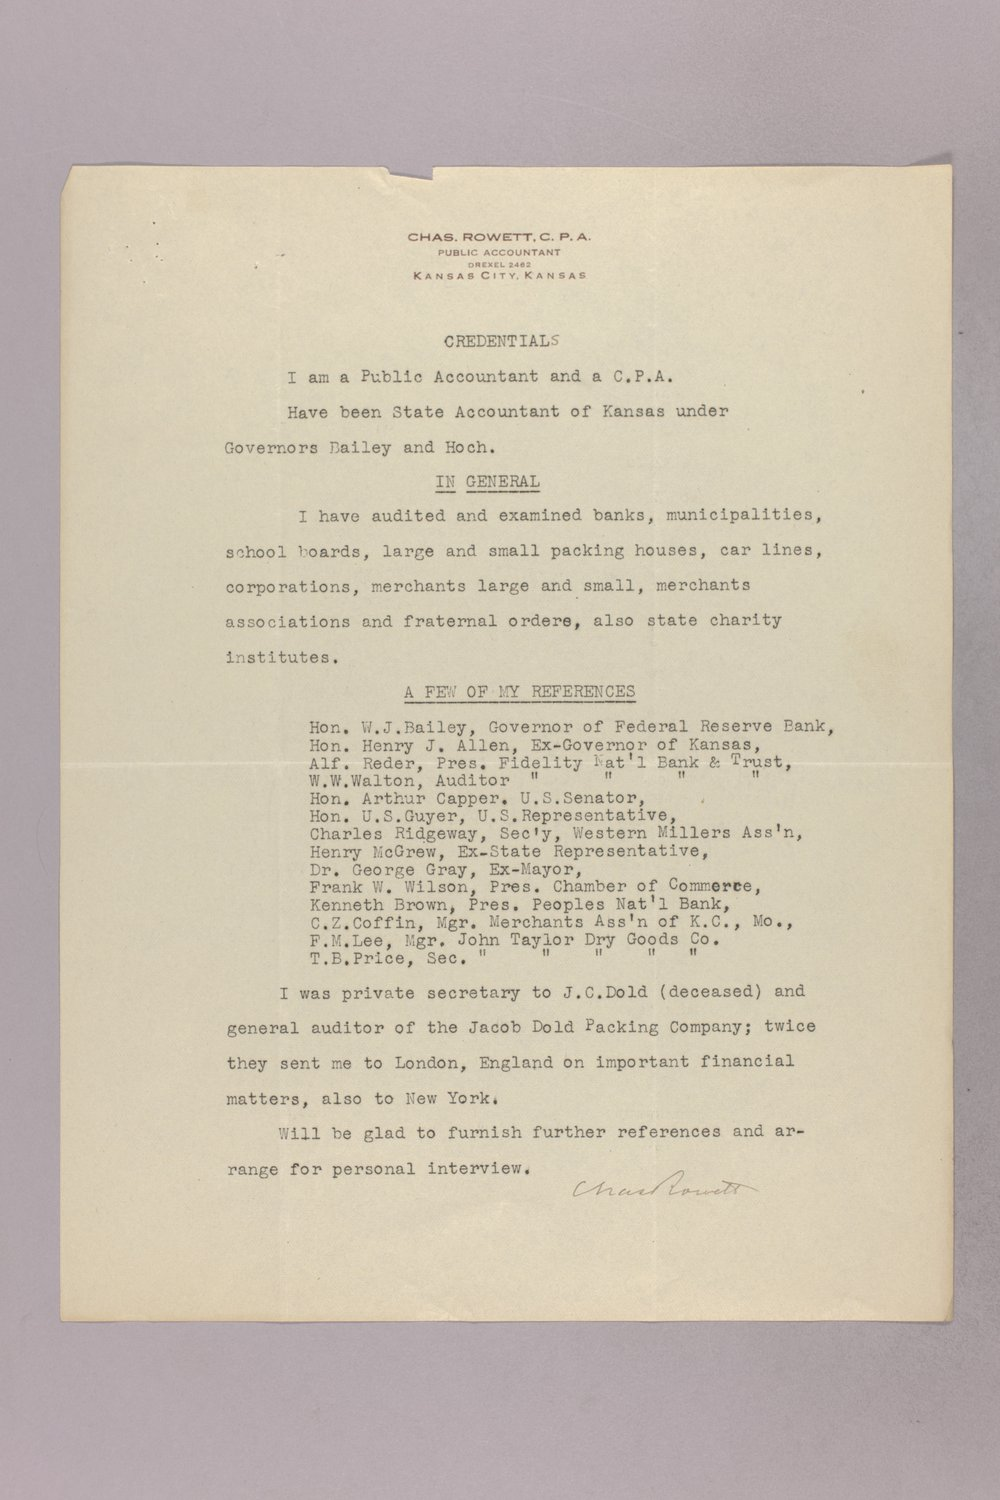 Governor Clyde M. Reed correspondence, State Accountant - 6